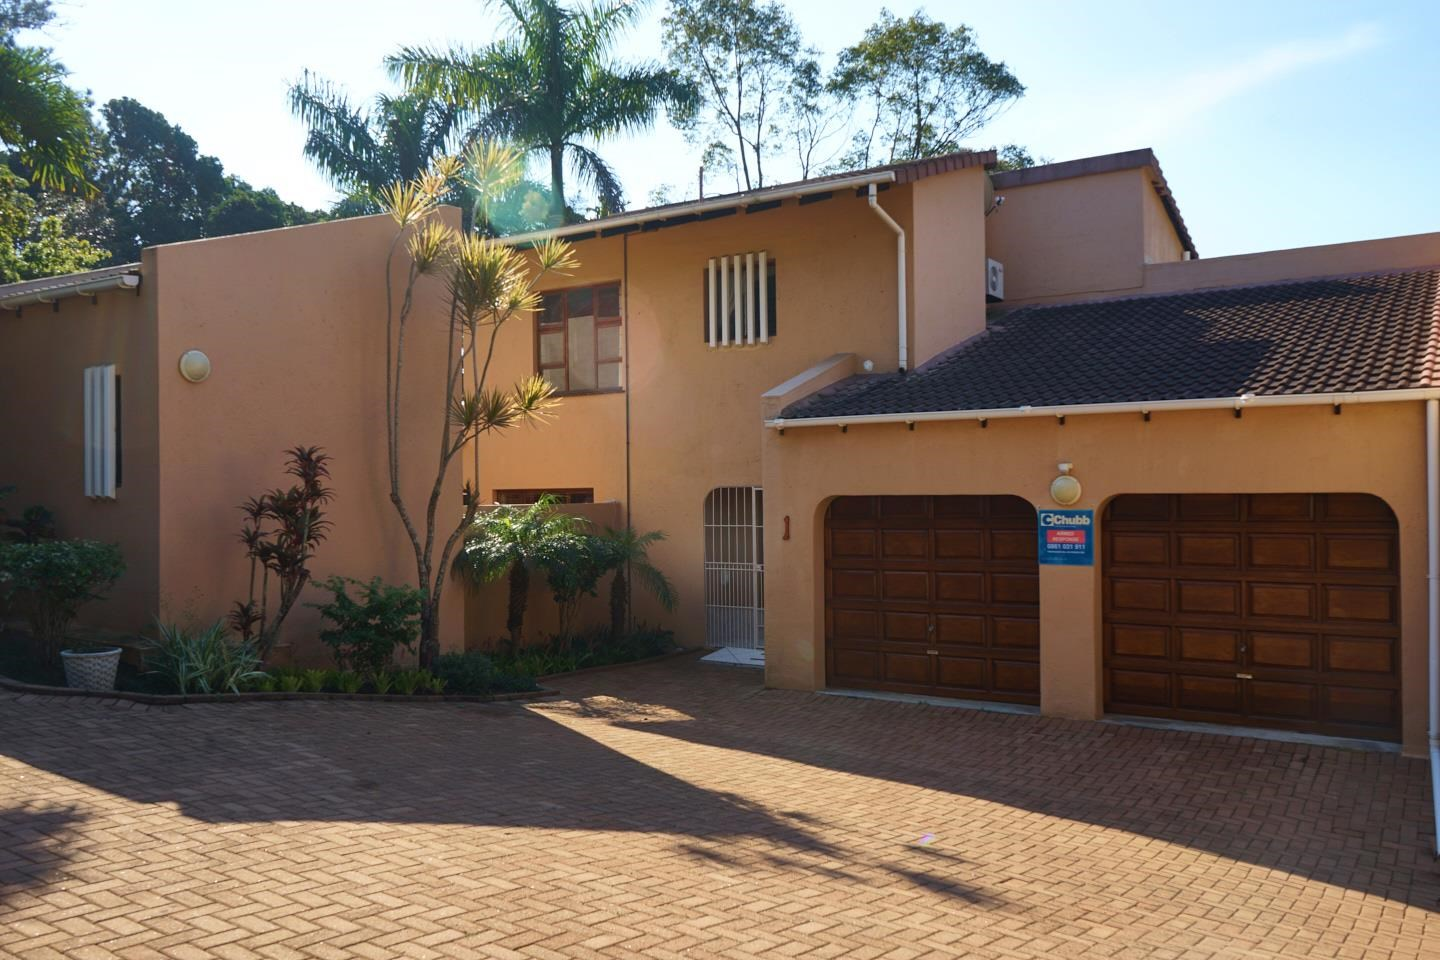 3 Bedroom Townhouse for Sale in Southbroom